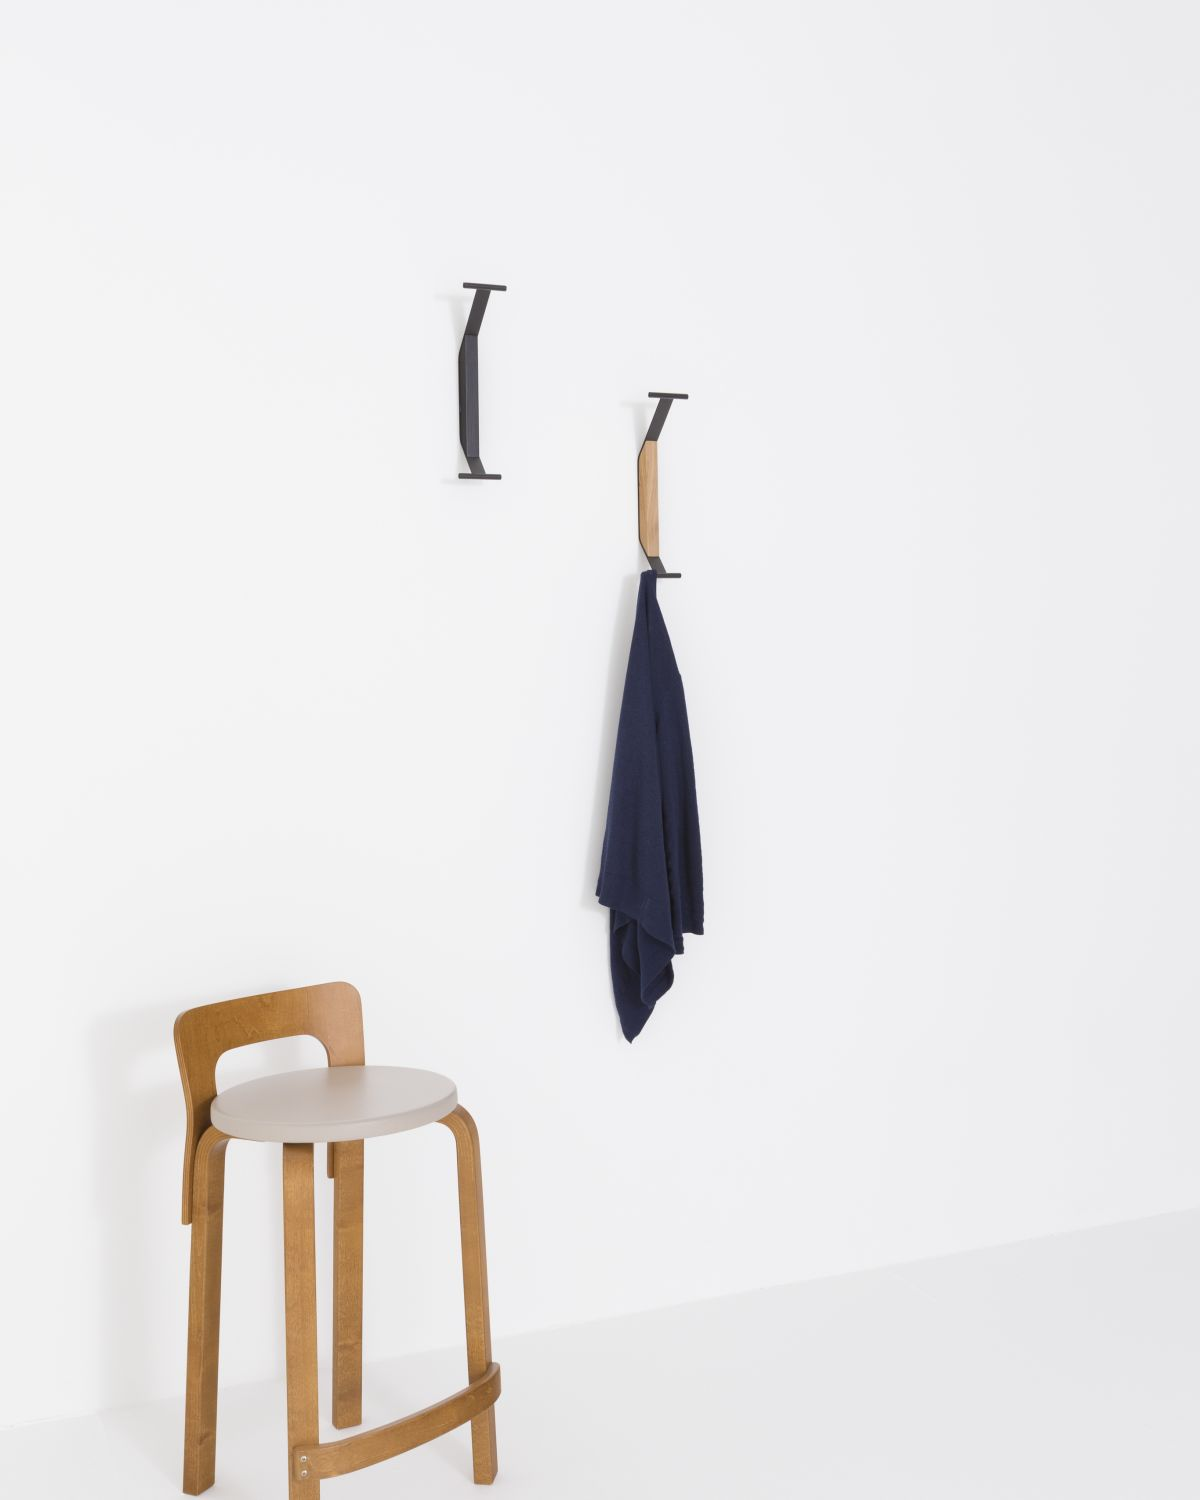 High-Chair-K65-Honey-Stained-Leather-Seat-Kaari-Wall-Hook